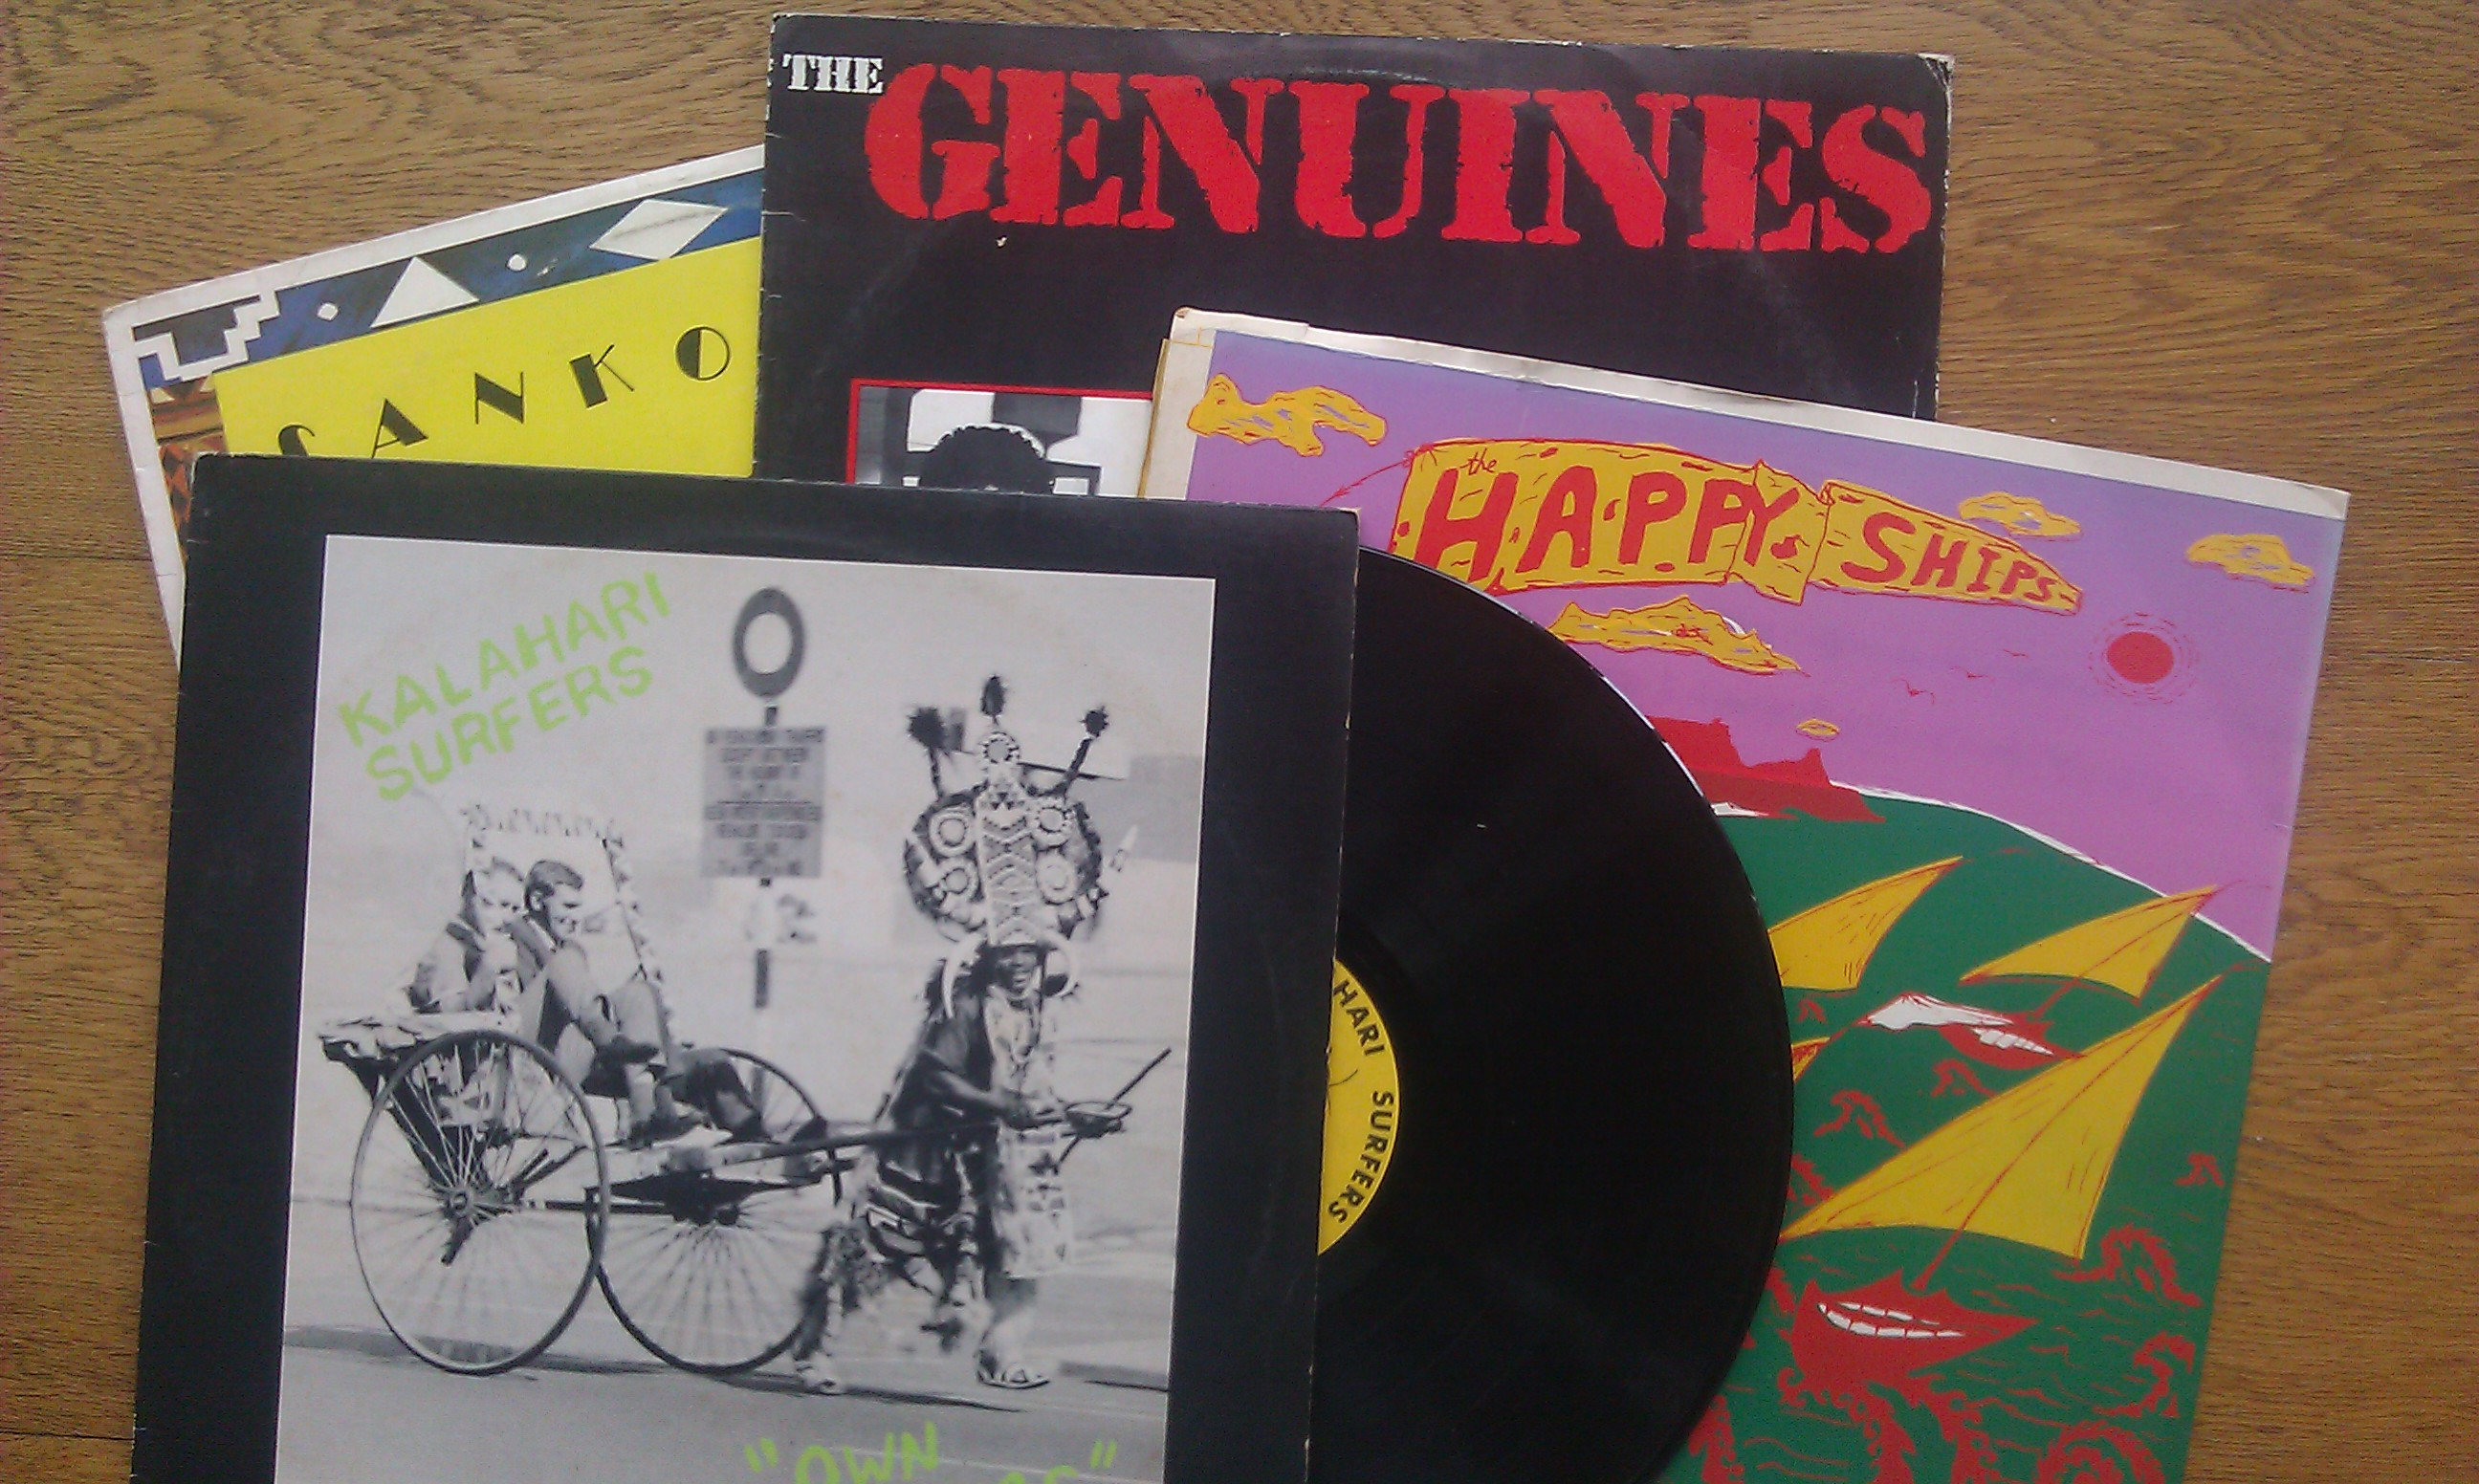 shot of 4 Shifty record albums from 1980s